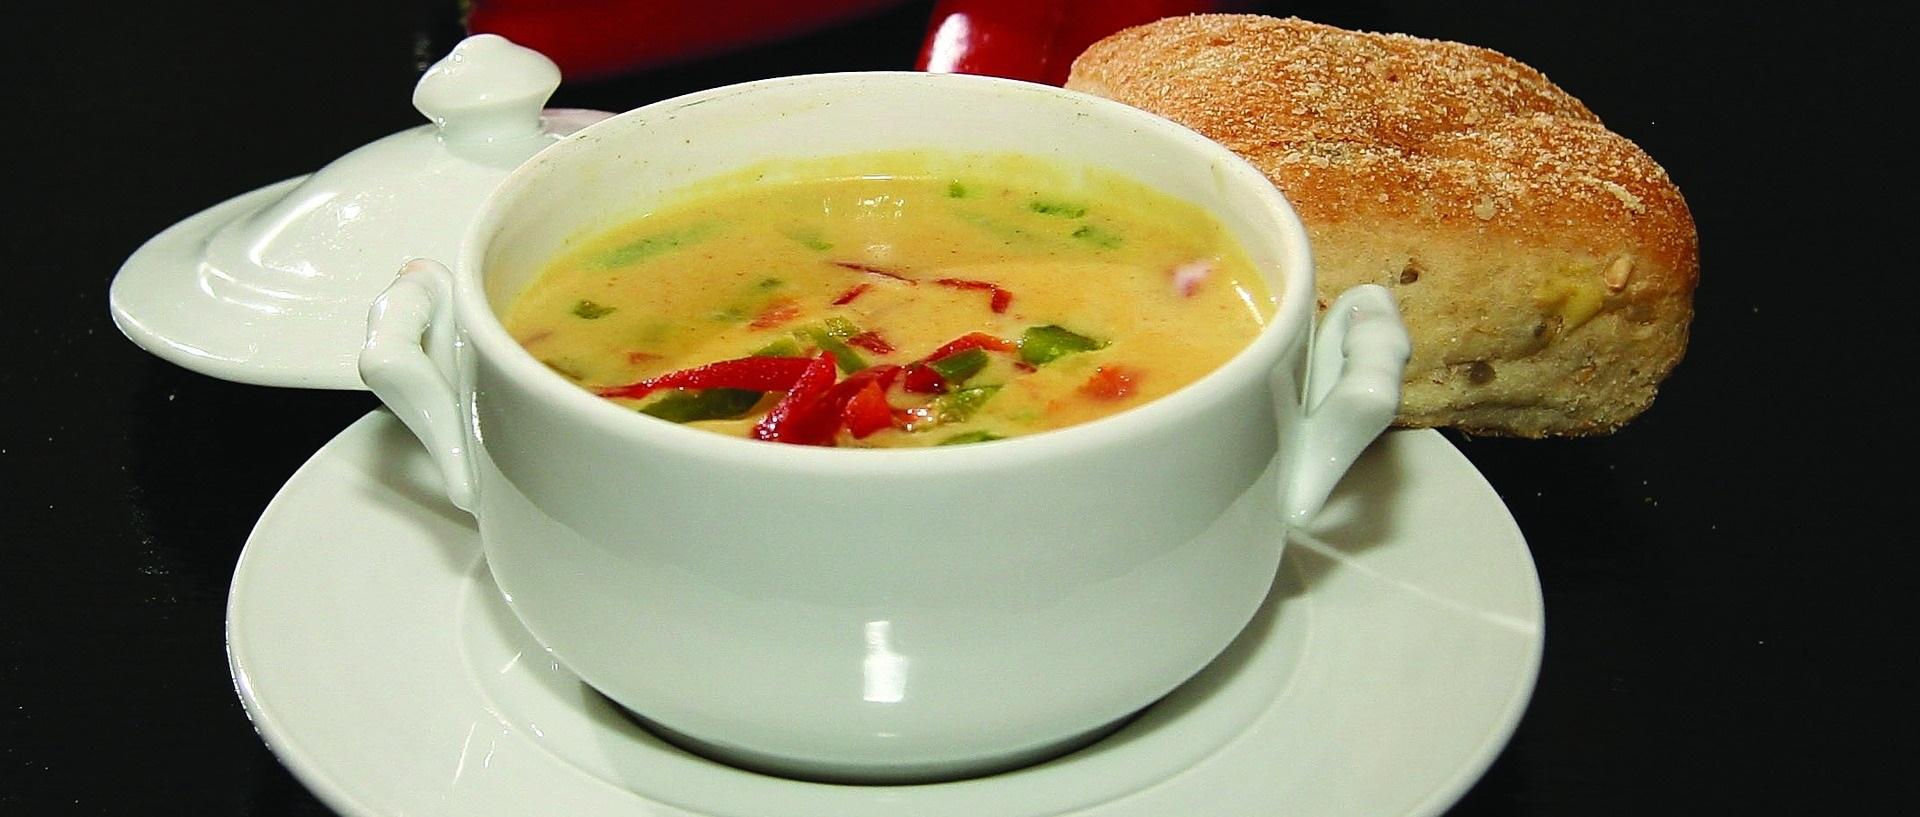 white soup bowl on white plate. Soup bowl filled with yellow colored soup with red and green peppers, and a piece of bread in the background